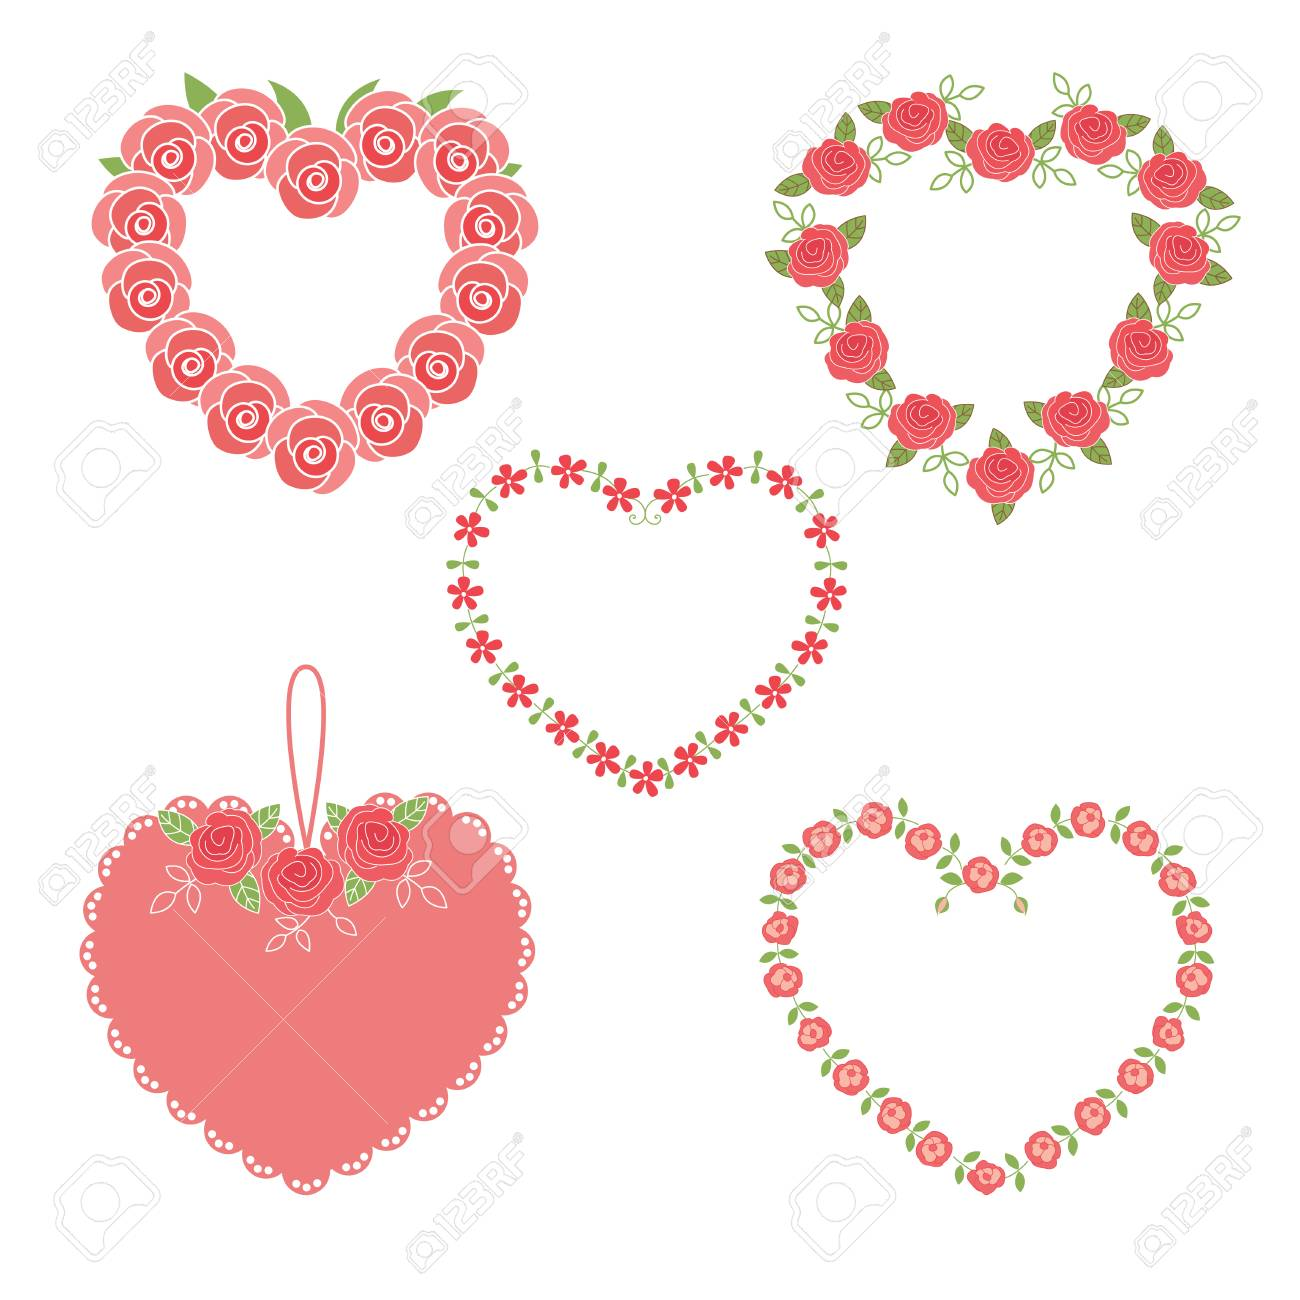 Set Of Flower Heart Frames Royalty Free Cliparts, Vectors, And Stock ...